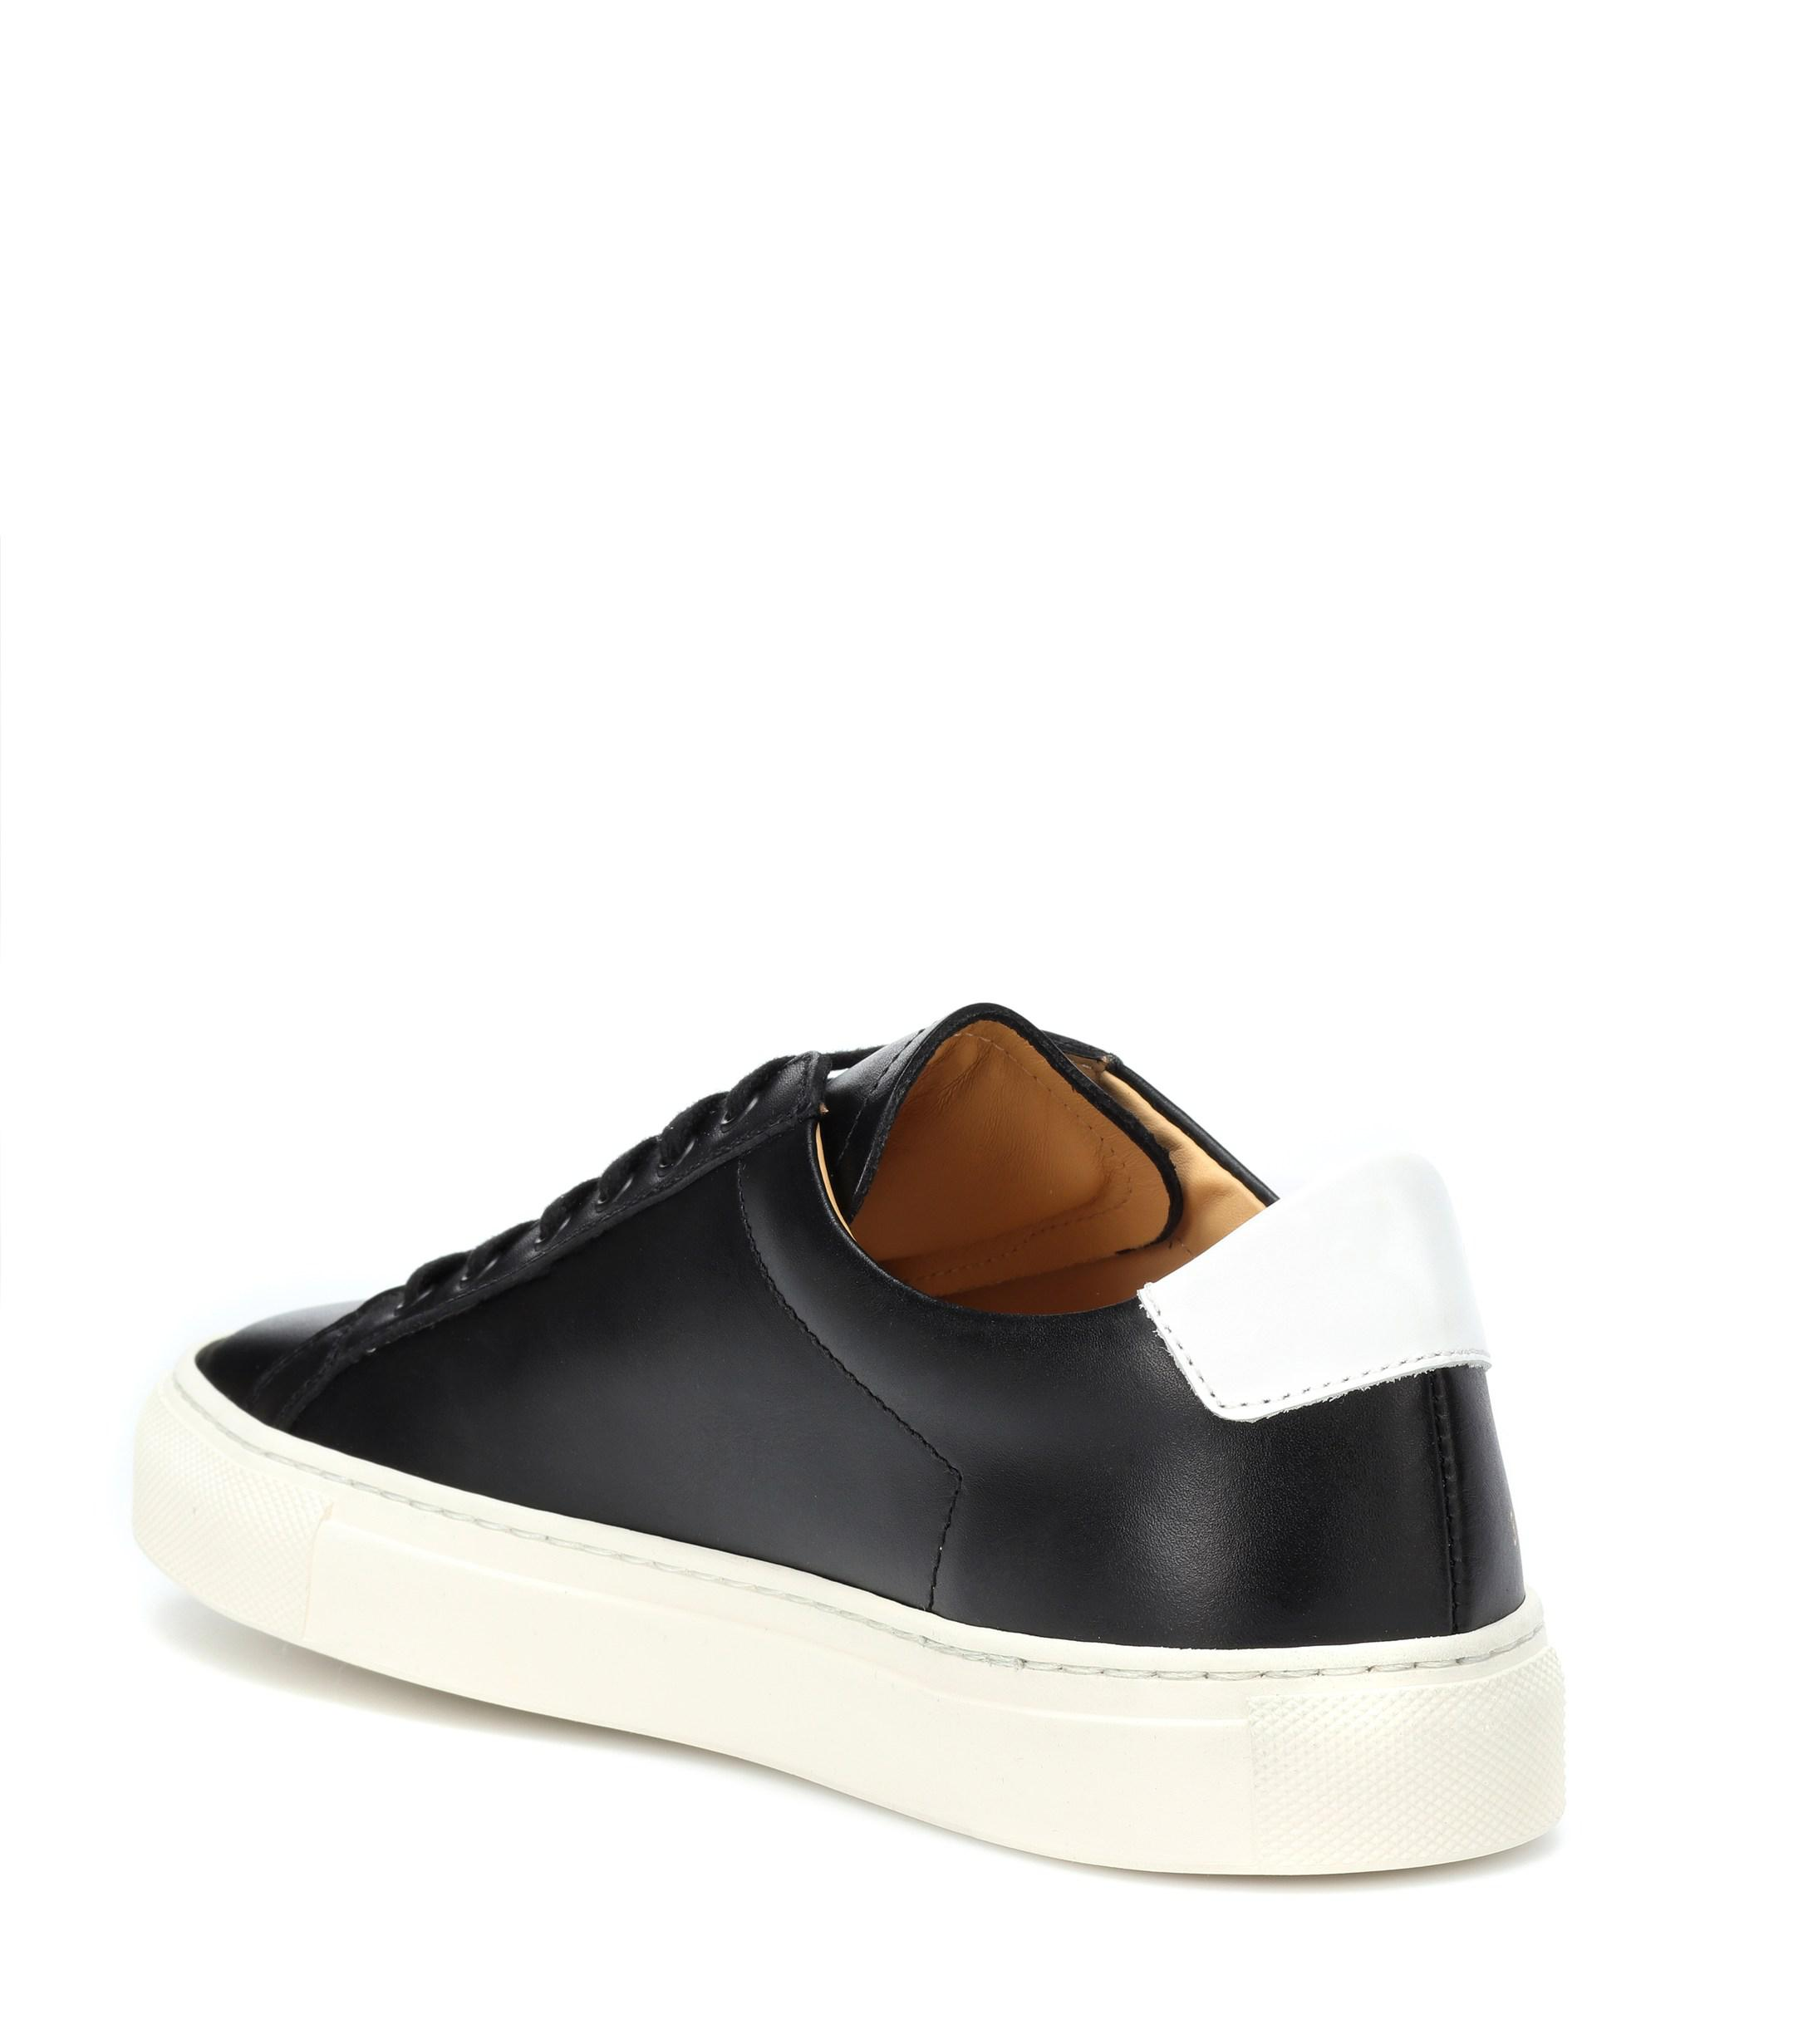 Common Projects Retro Leather Sneakers in Black